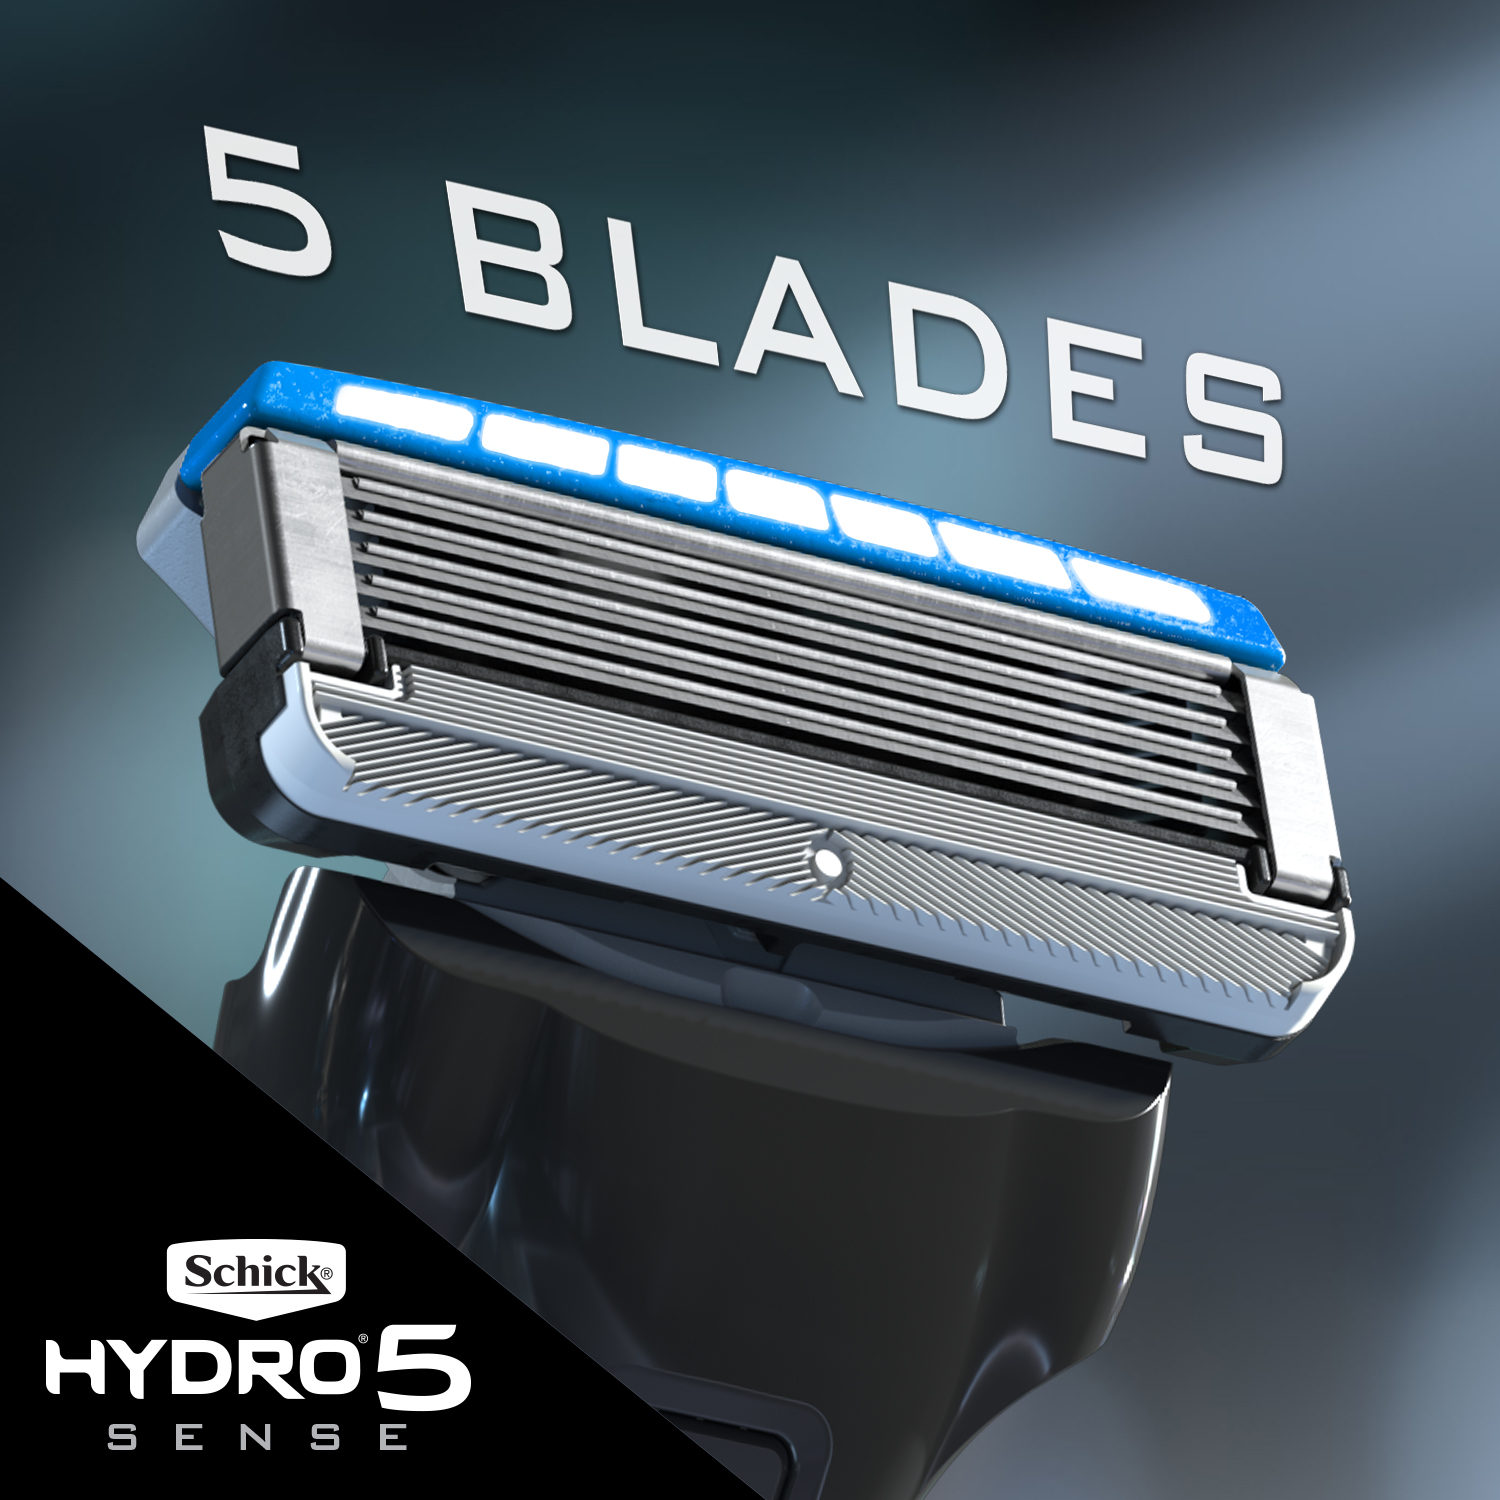 Ultra Glide Blades with Skin Guards - Our 5 Ultra Glide Blades feature breakthrough skin guards at the top of each blade, doubling the number of points of contact between the blades and skin between blades—all to help control the skin flow to reduce irritation.